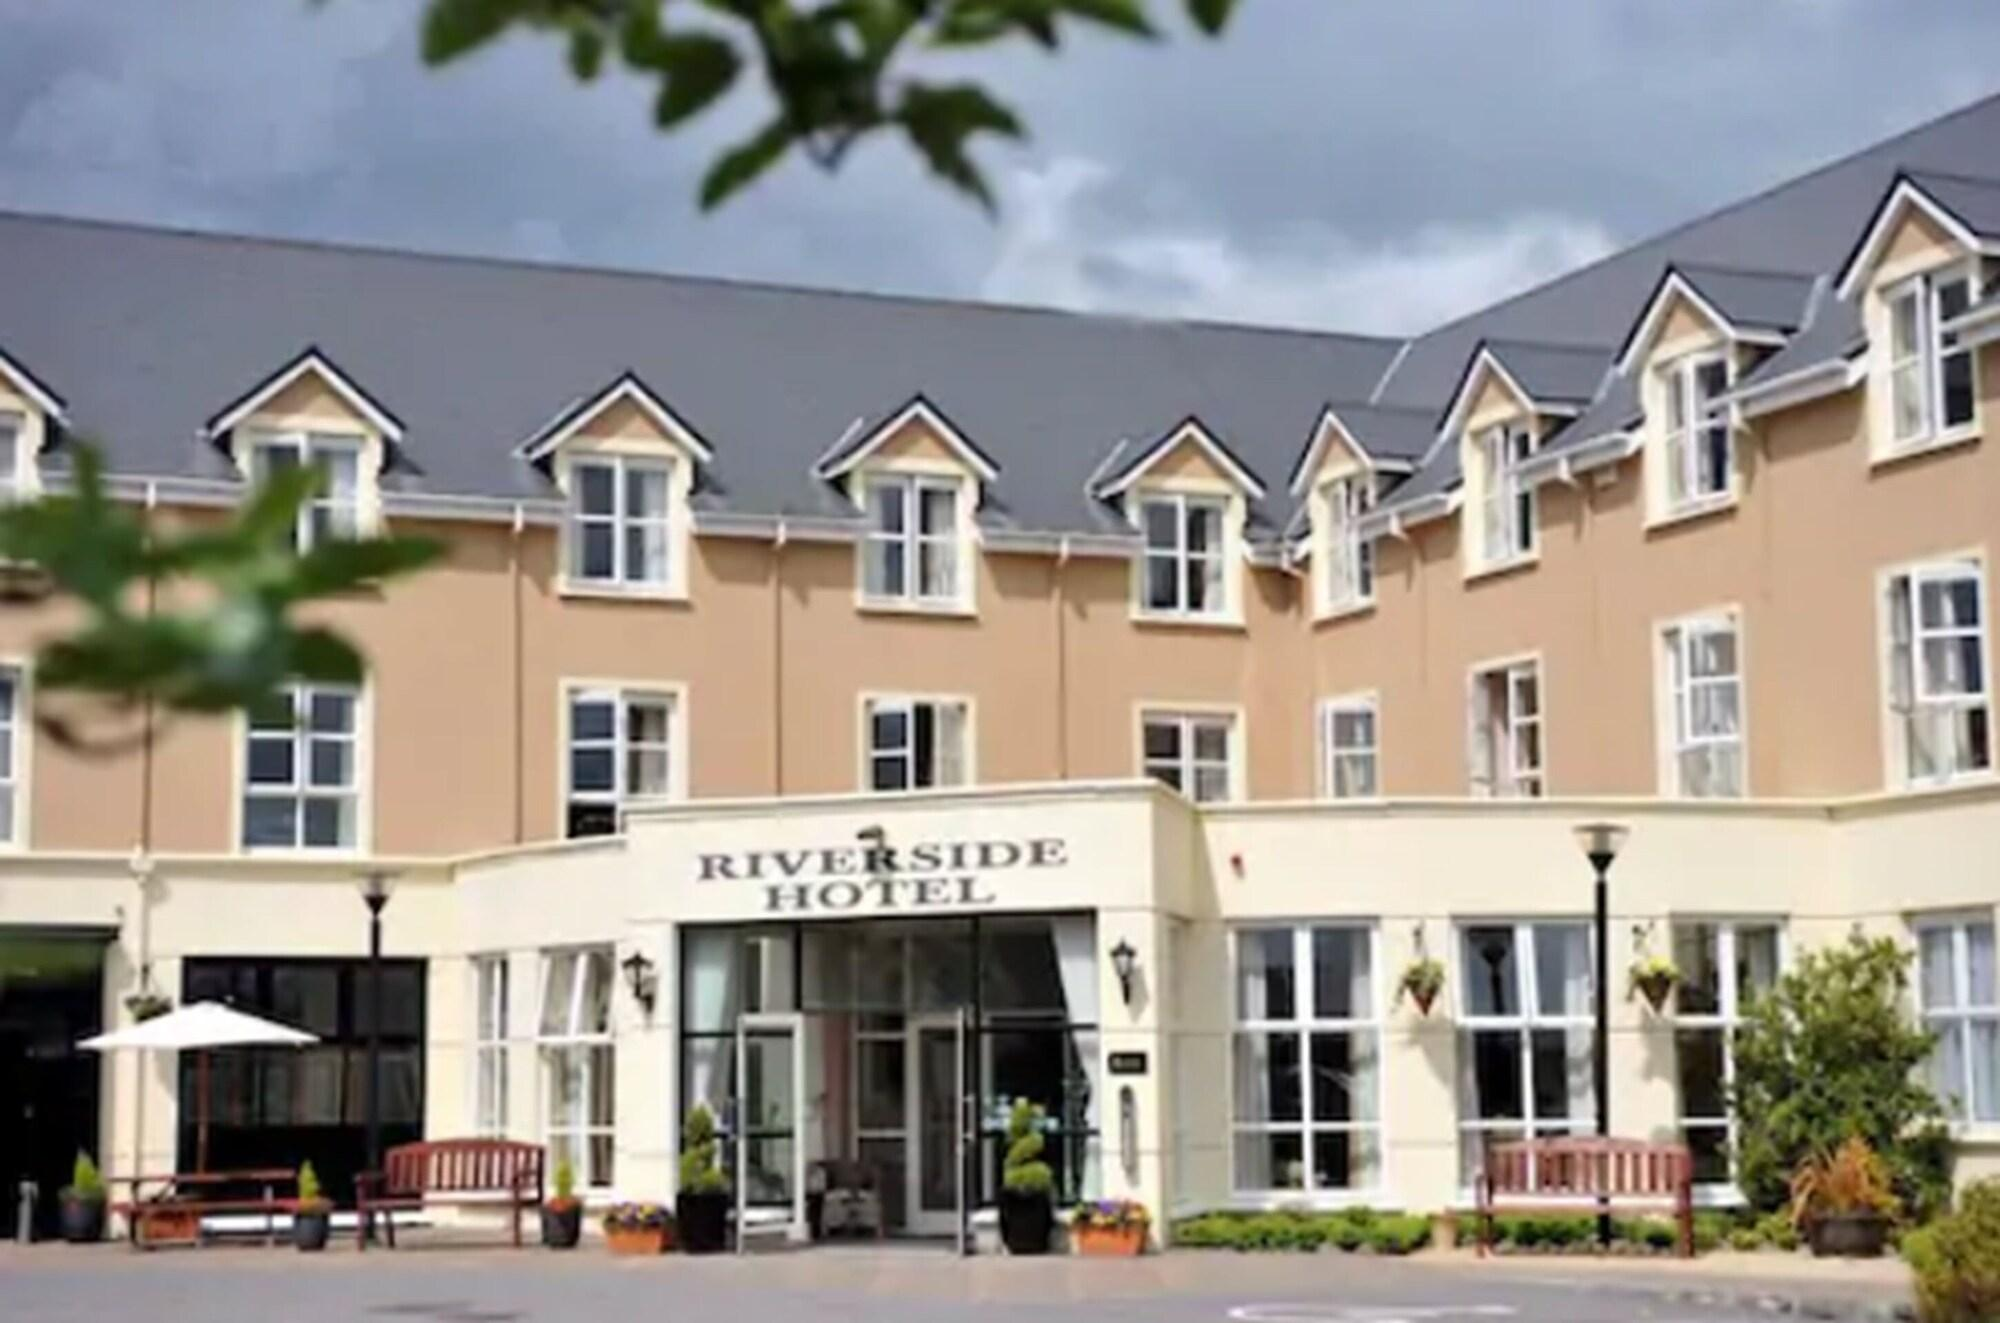 Killarney Riverside Hotel